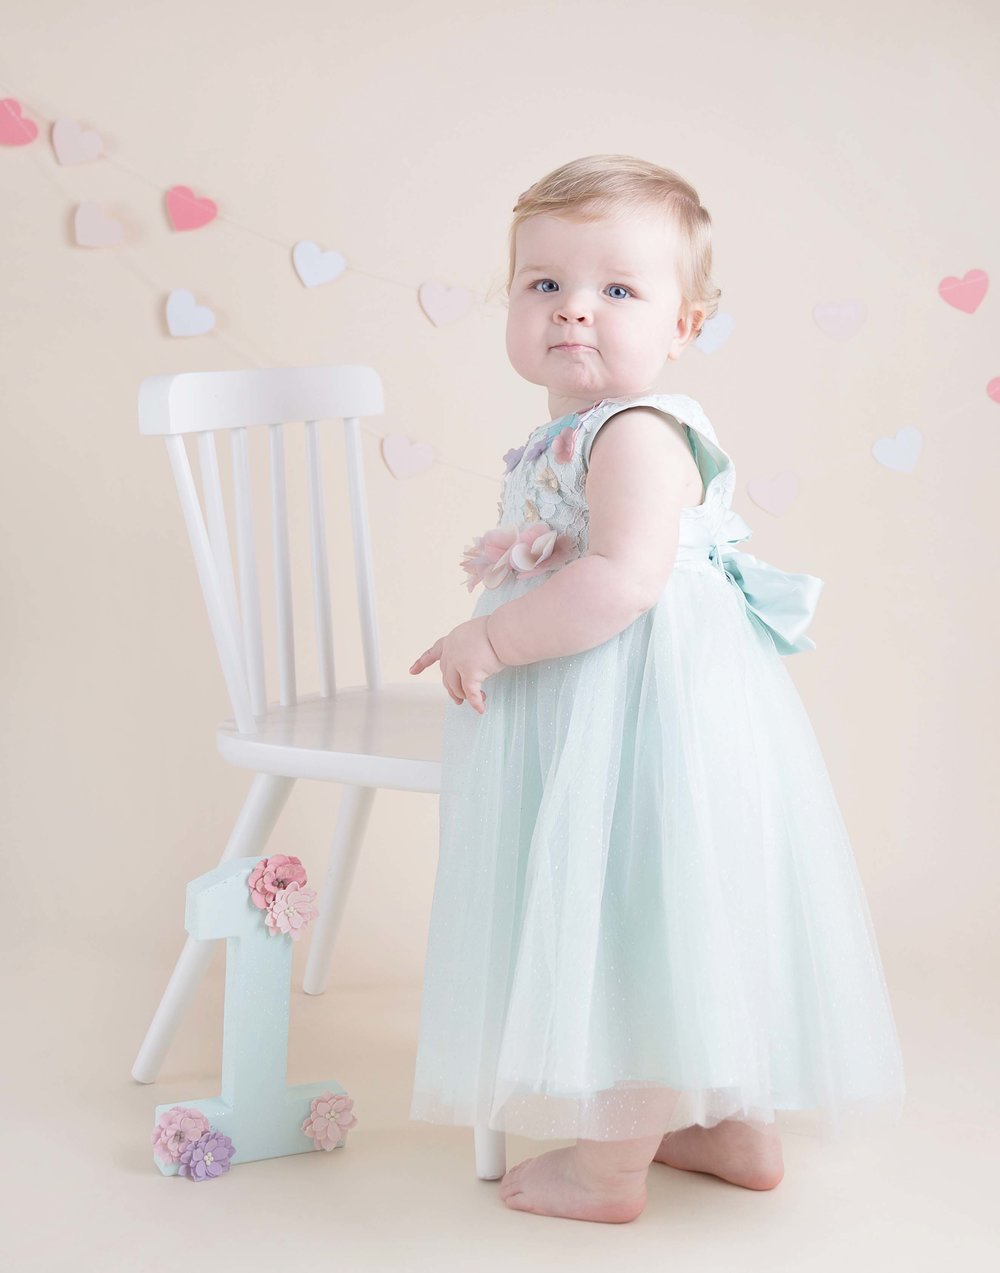 Baby photography Birthday sessions Ollie & George Photography Clitheroe, Ribble Valley, Lancashire, close to Burnley, Accrington, Preston and Skipton